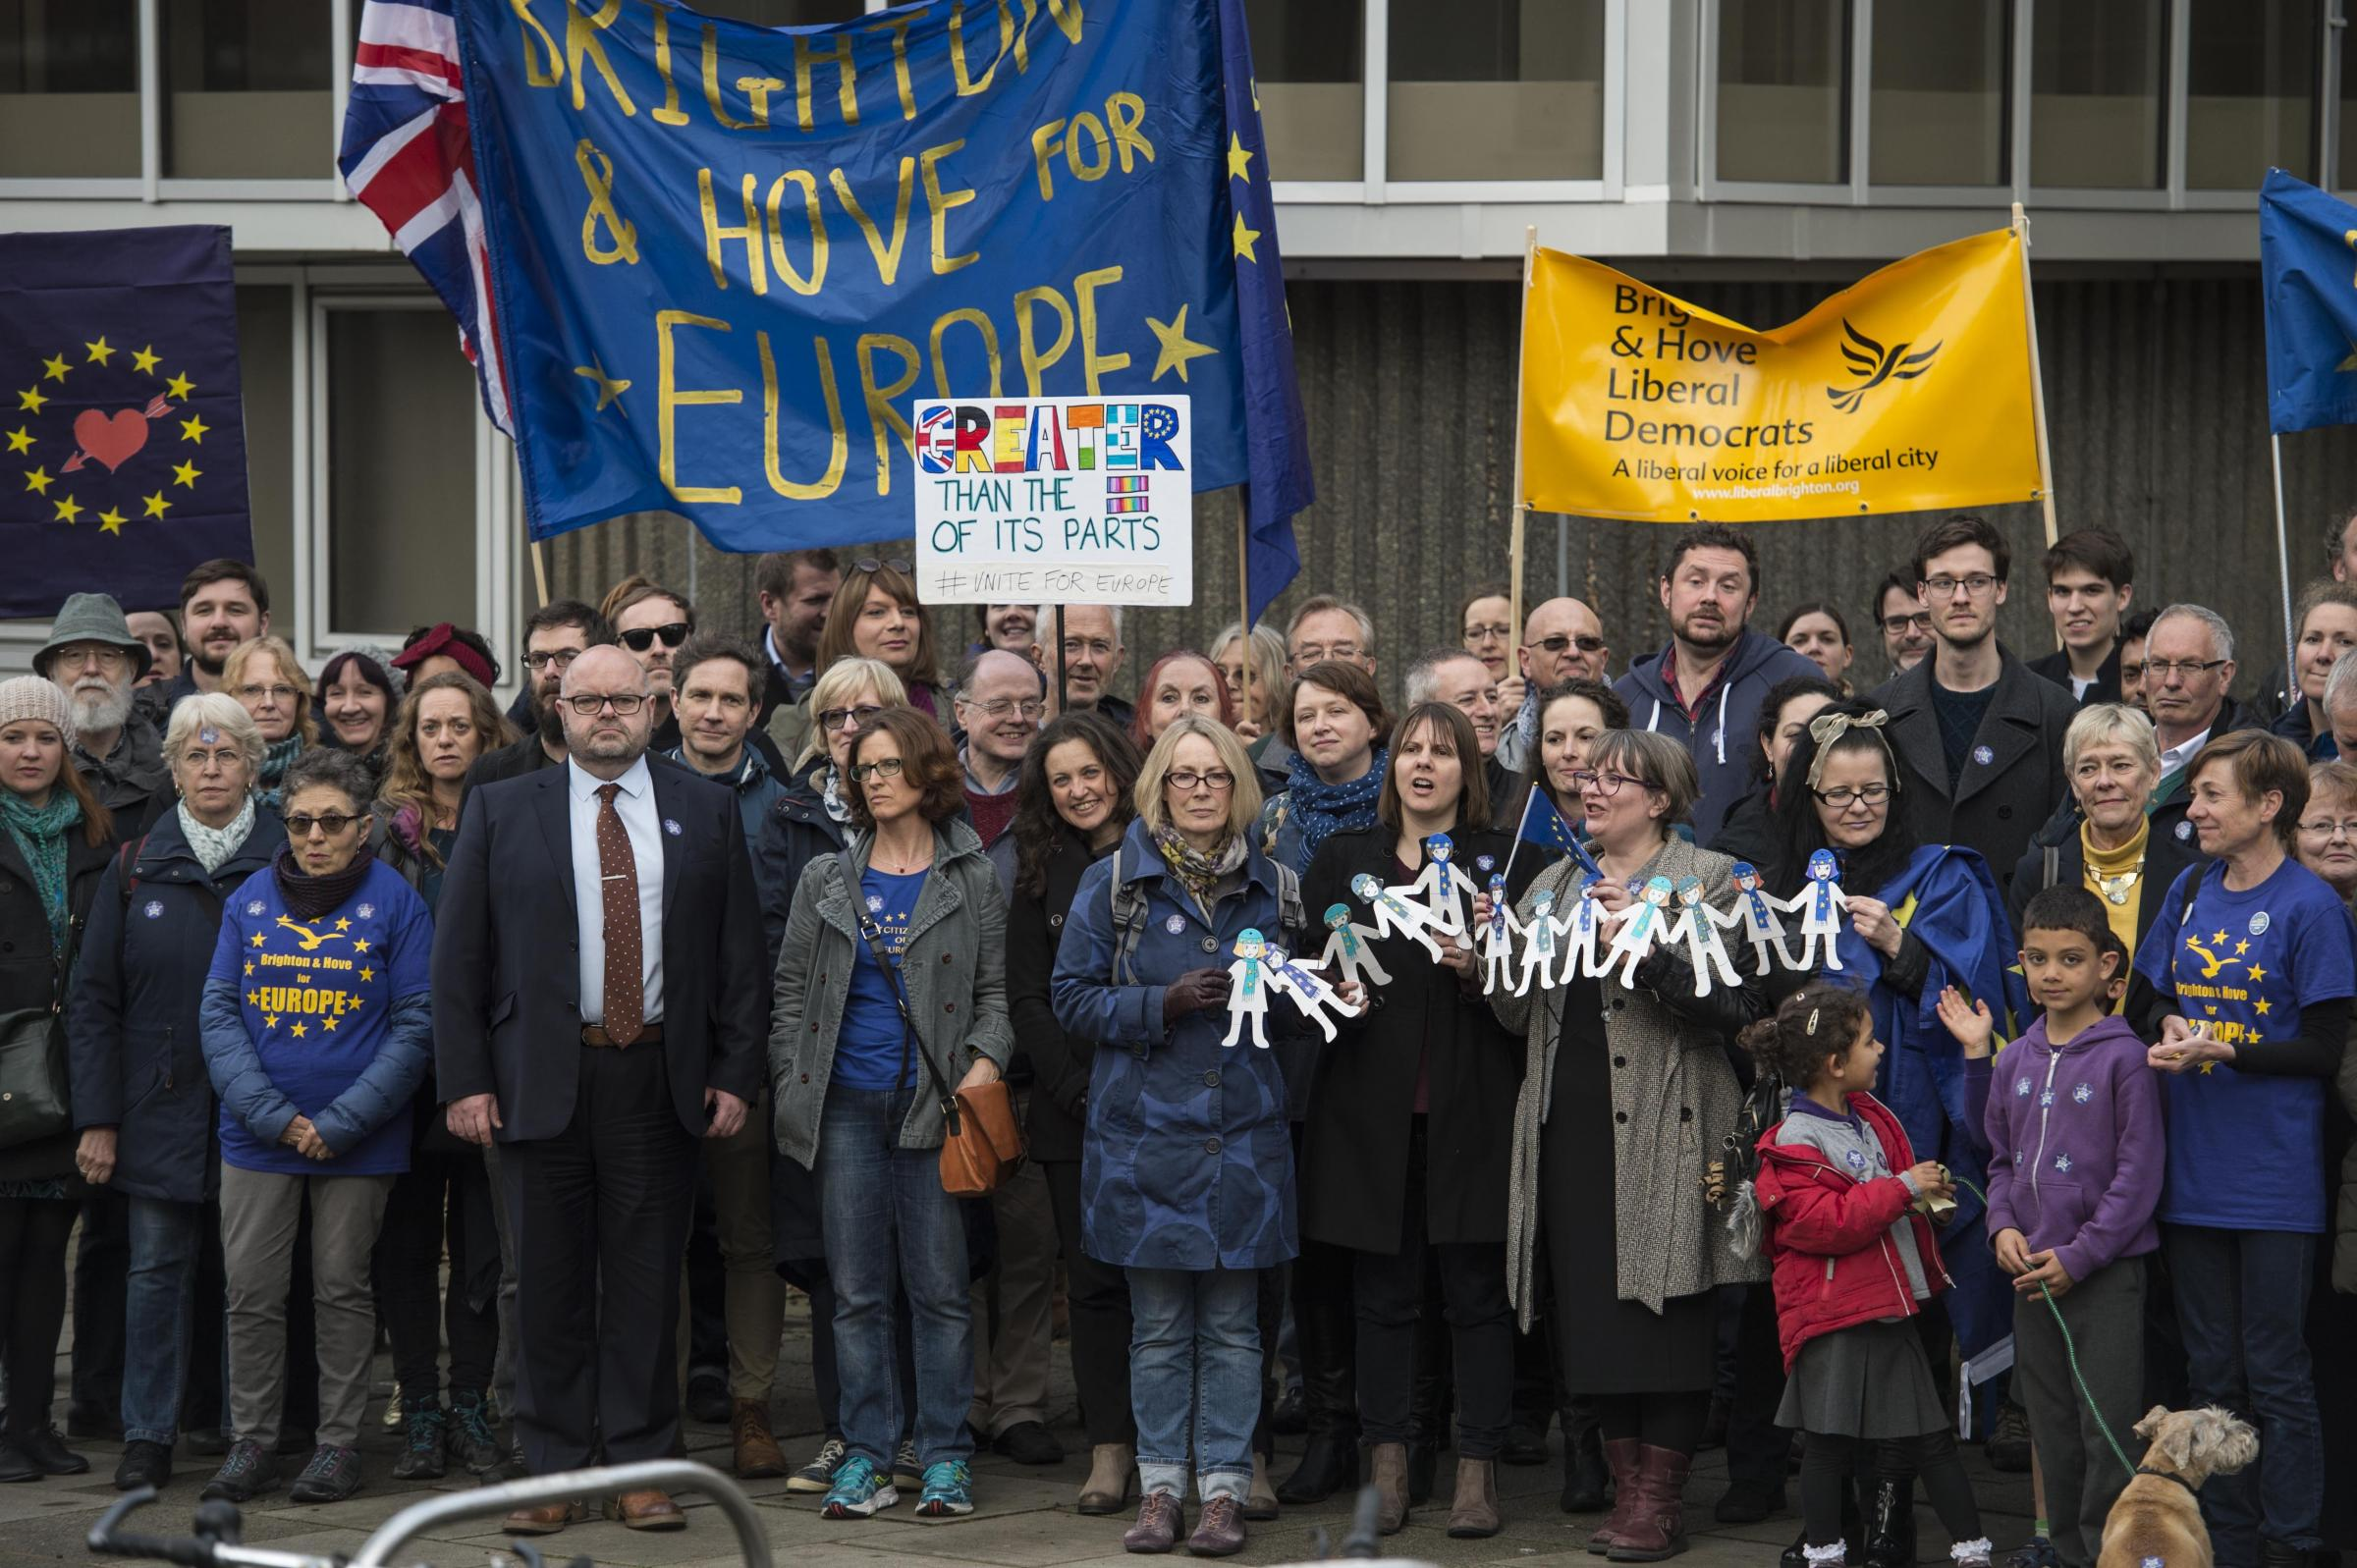 Pro-Europe campaigners demonstrate outside Hove Town Hall